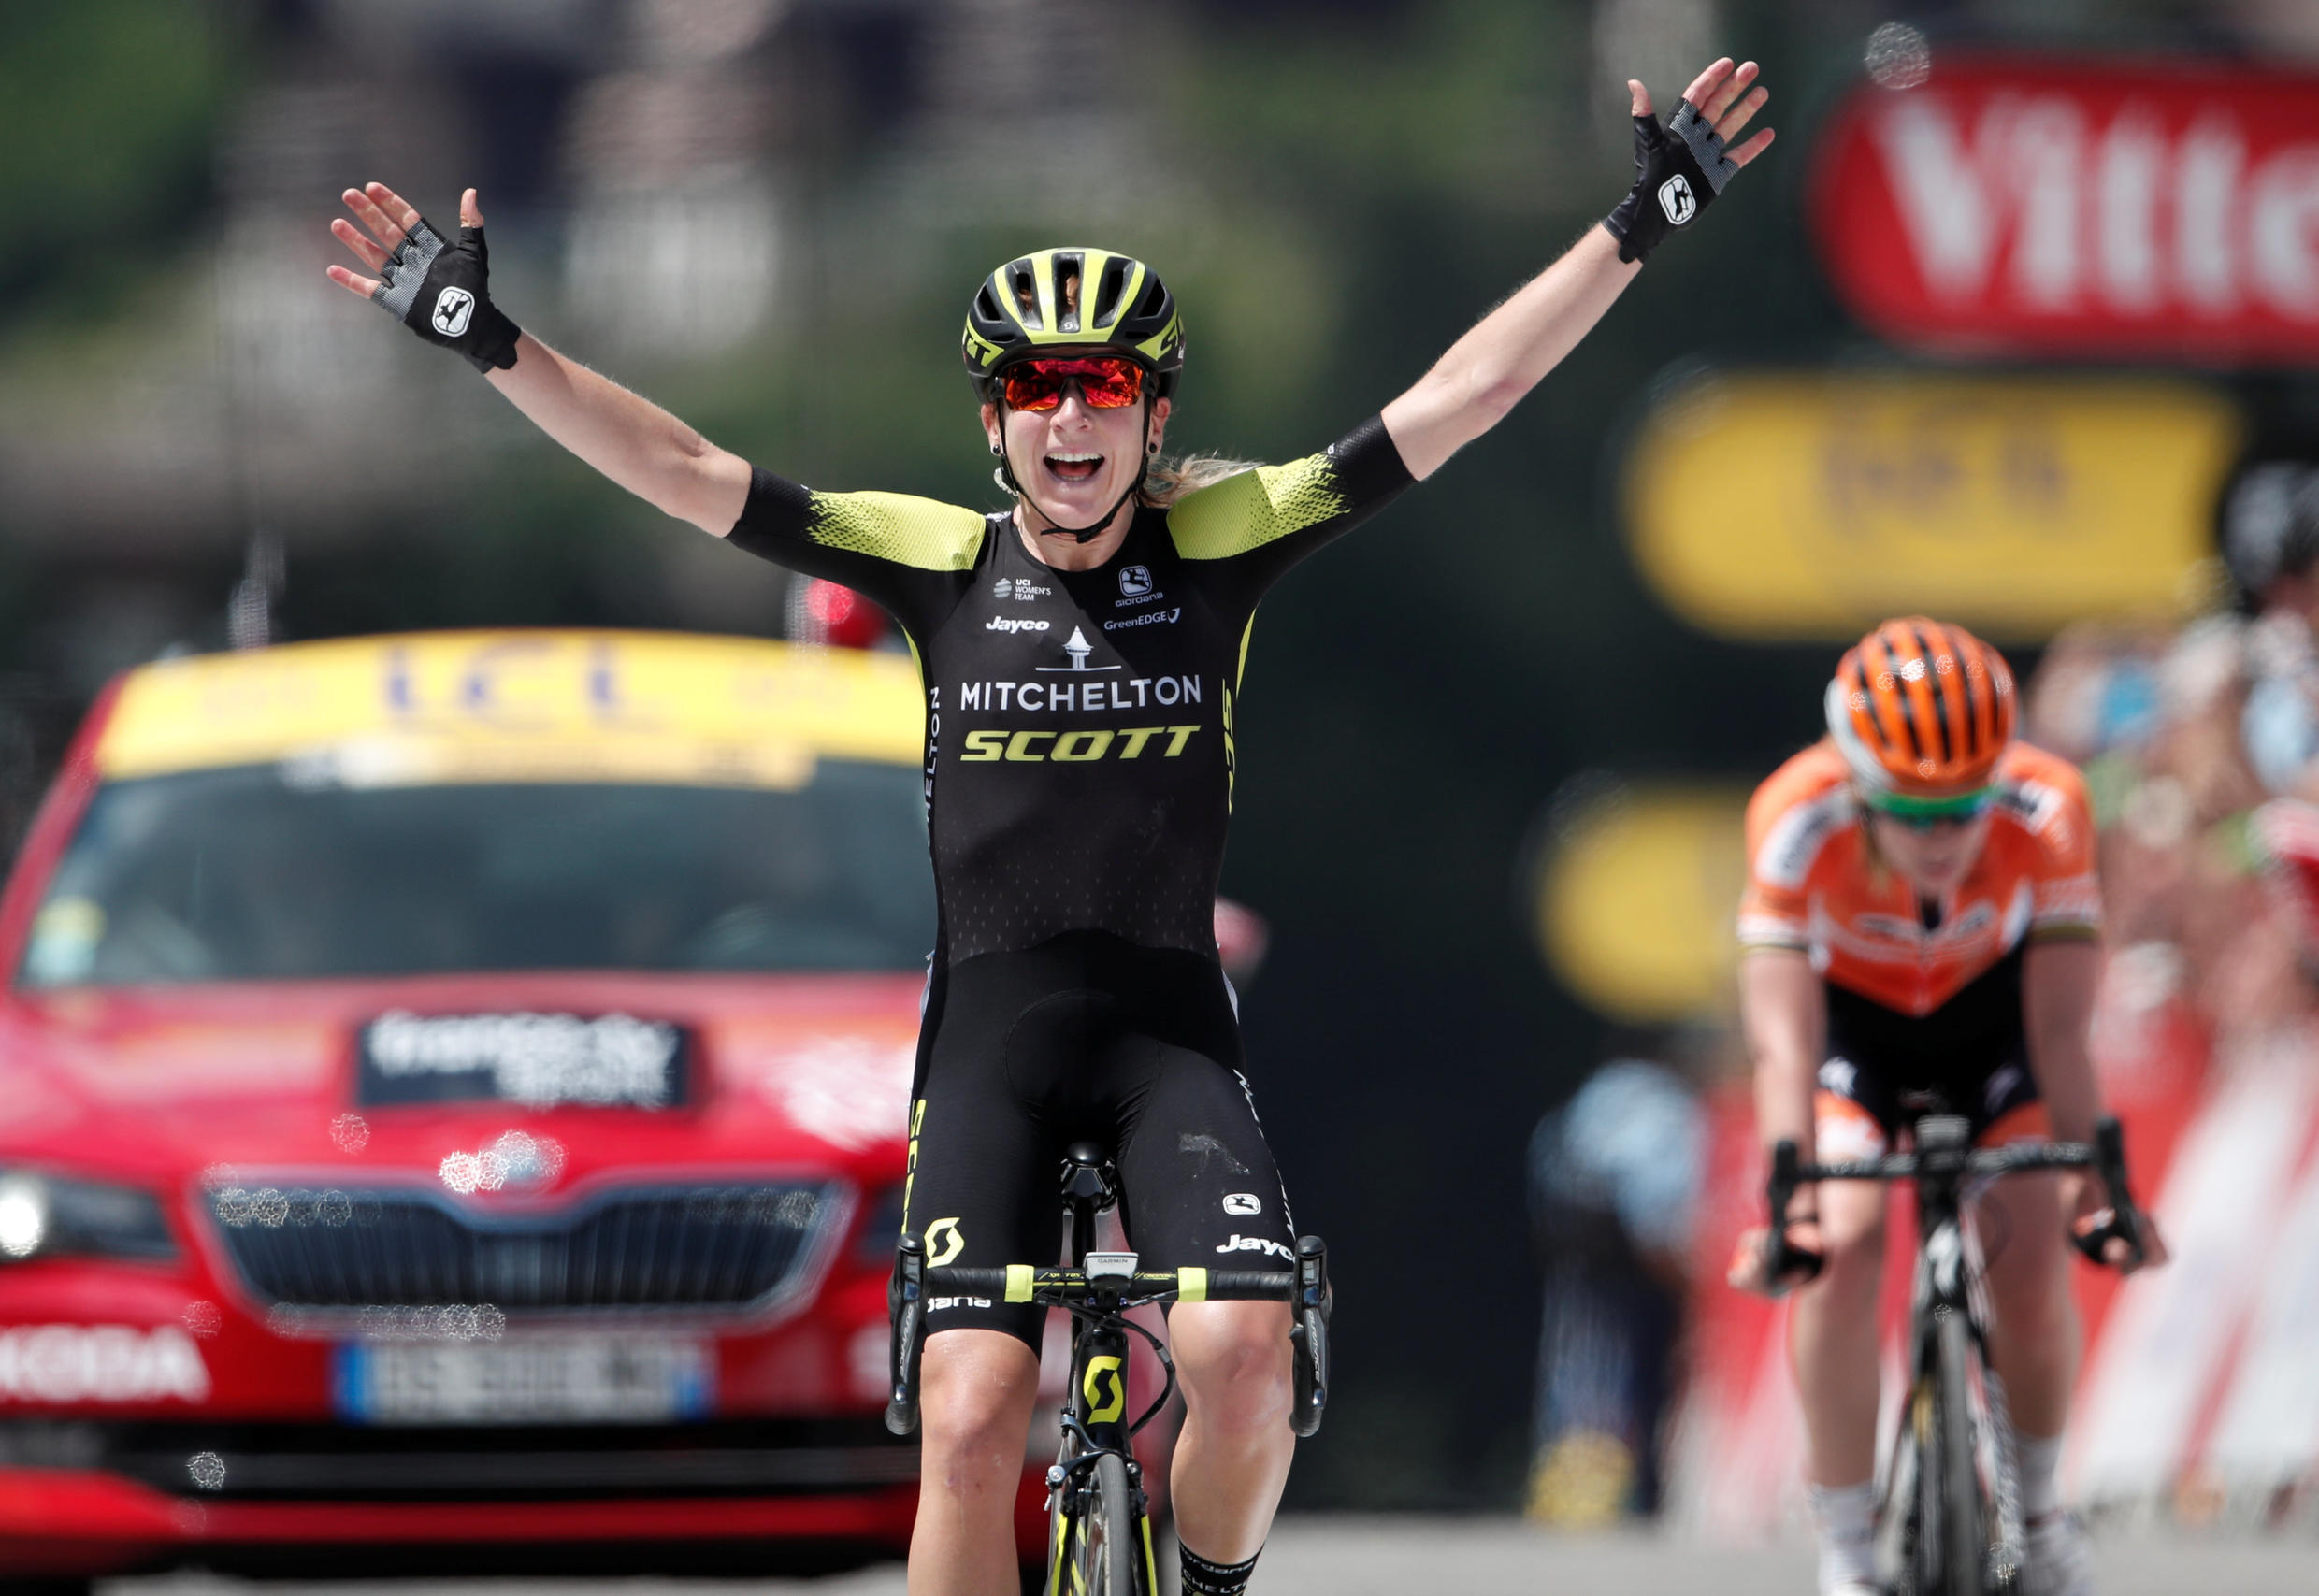 Cycling - 5th La Course by Le Tour de France - 112.5-km from Annecy to Le Grand-Bornand - July 17, 2018 - Mitchelton-Scott rider Annemiek van Vleuten of the Netherlands wins the race ahead of Boels-Dolmans rider Anna van der Breggen of the Netherlands